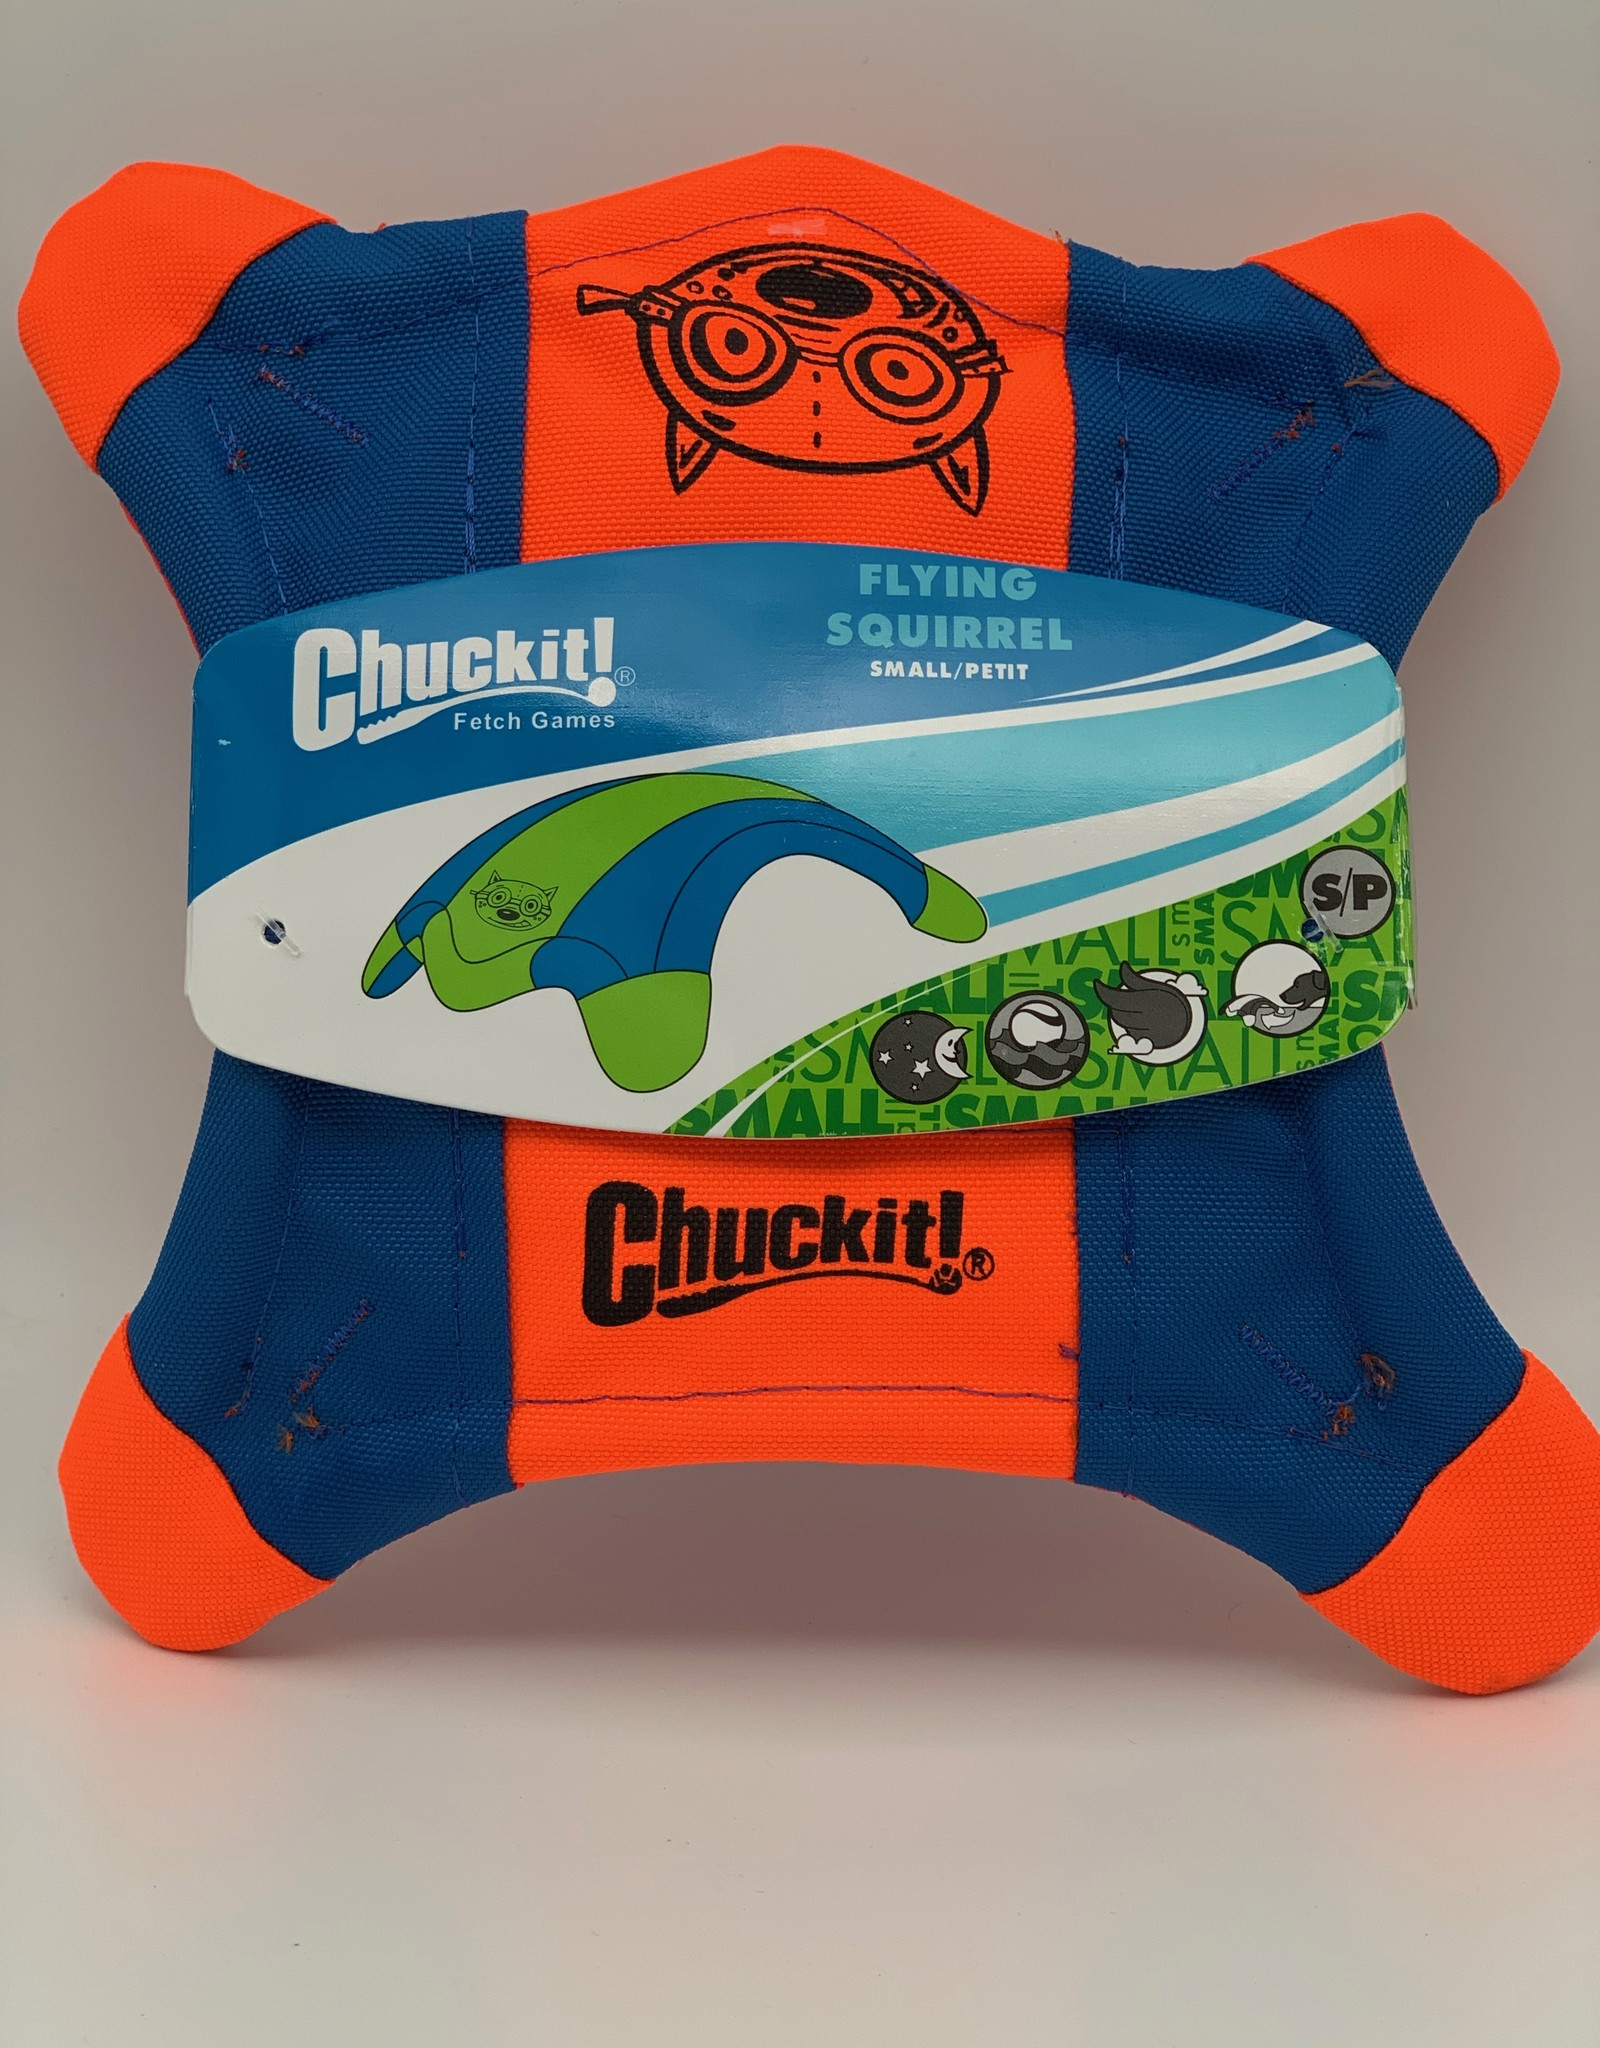 ChuckIt! Flying Squirrel - Small